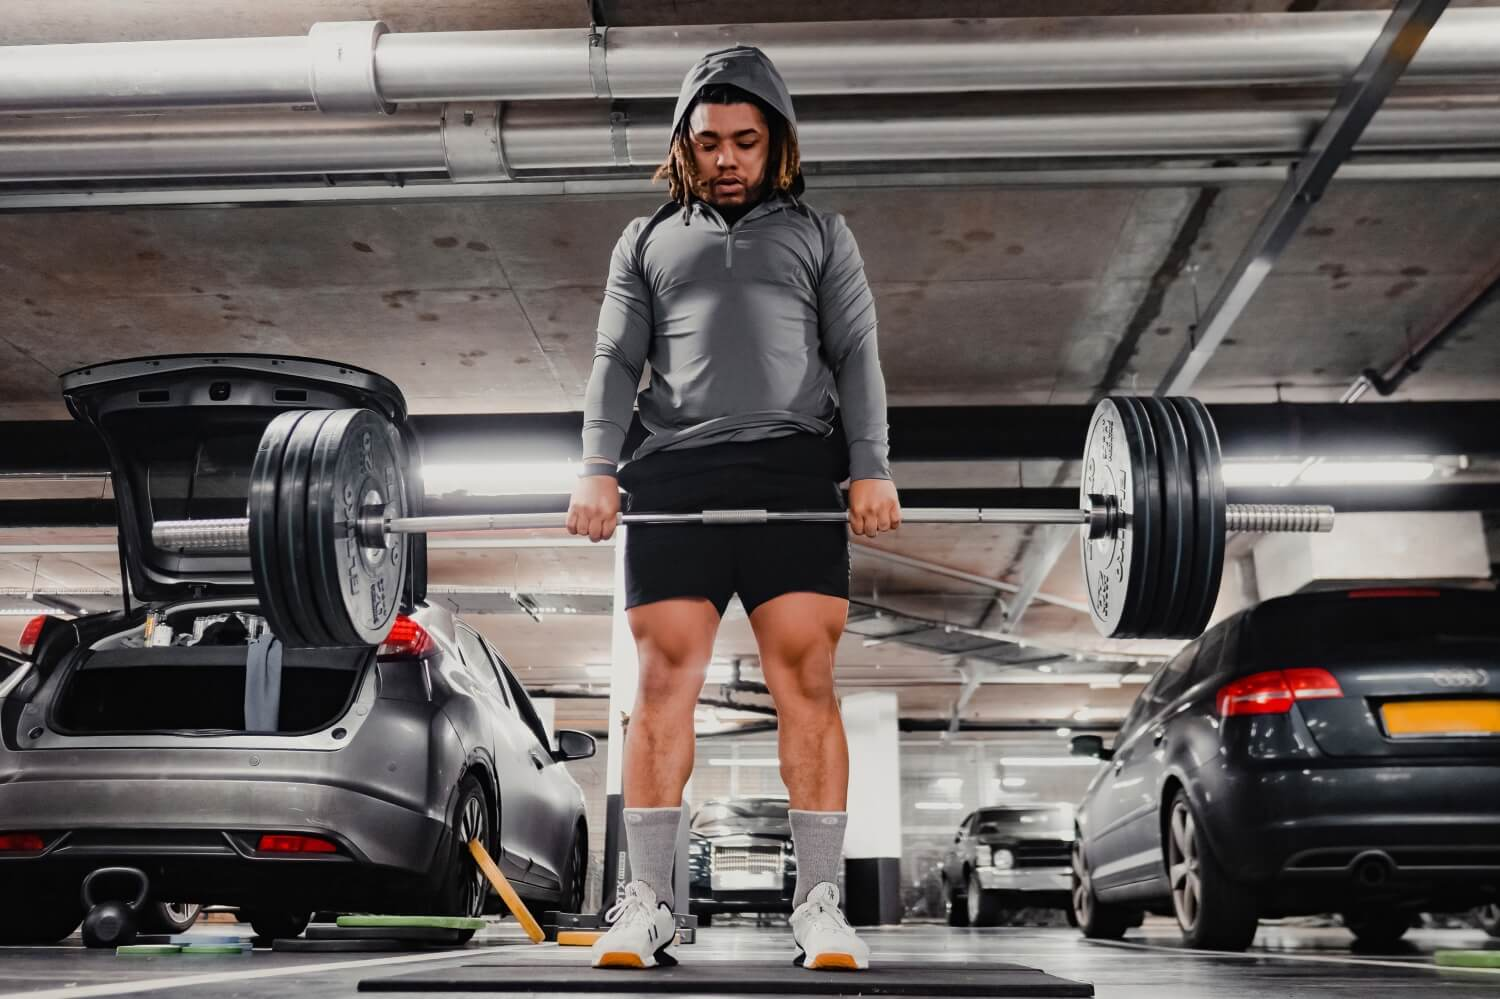 Mens CrossFit shorts training with barbell